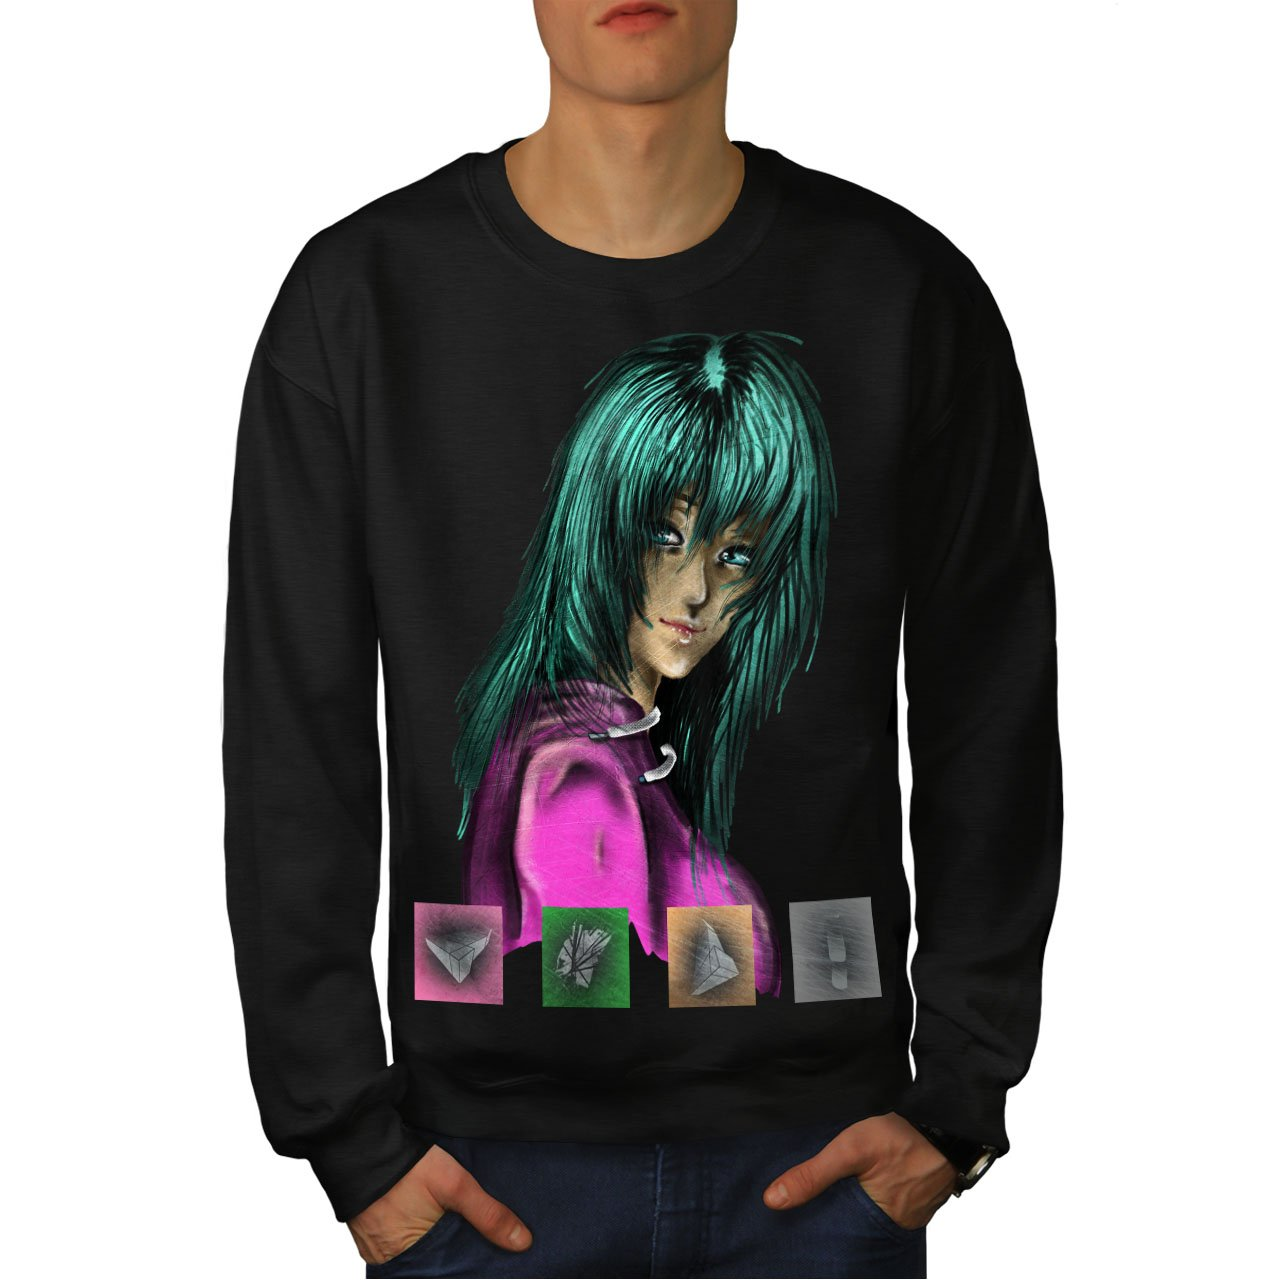 wellcoda Anime Green Funk Mens Sweatshirt Colorful Casual Jumper